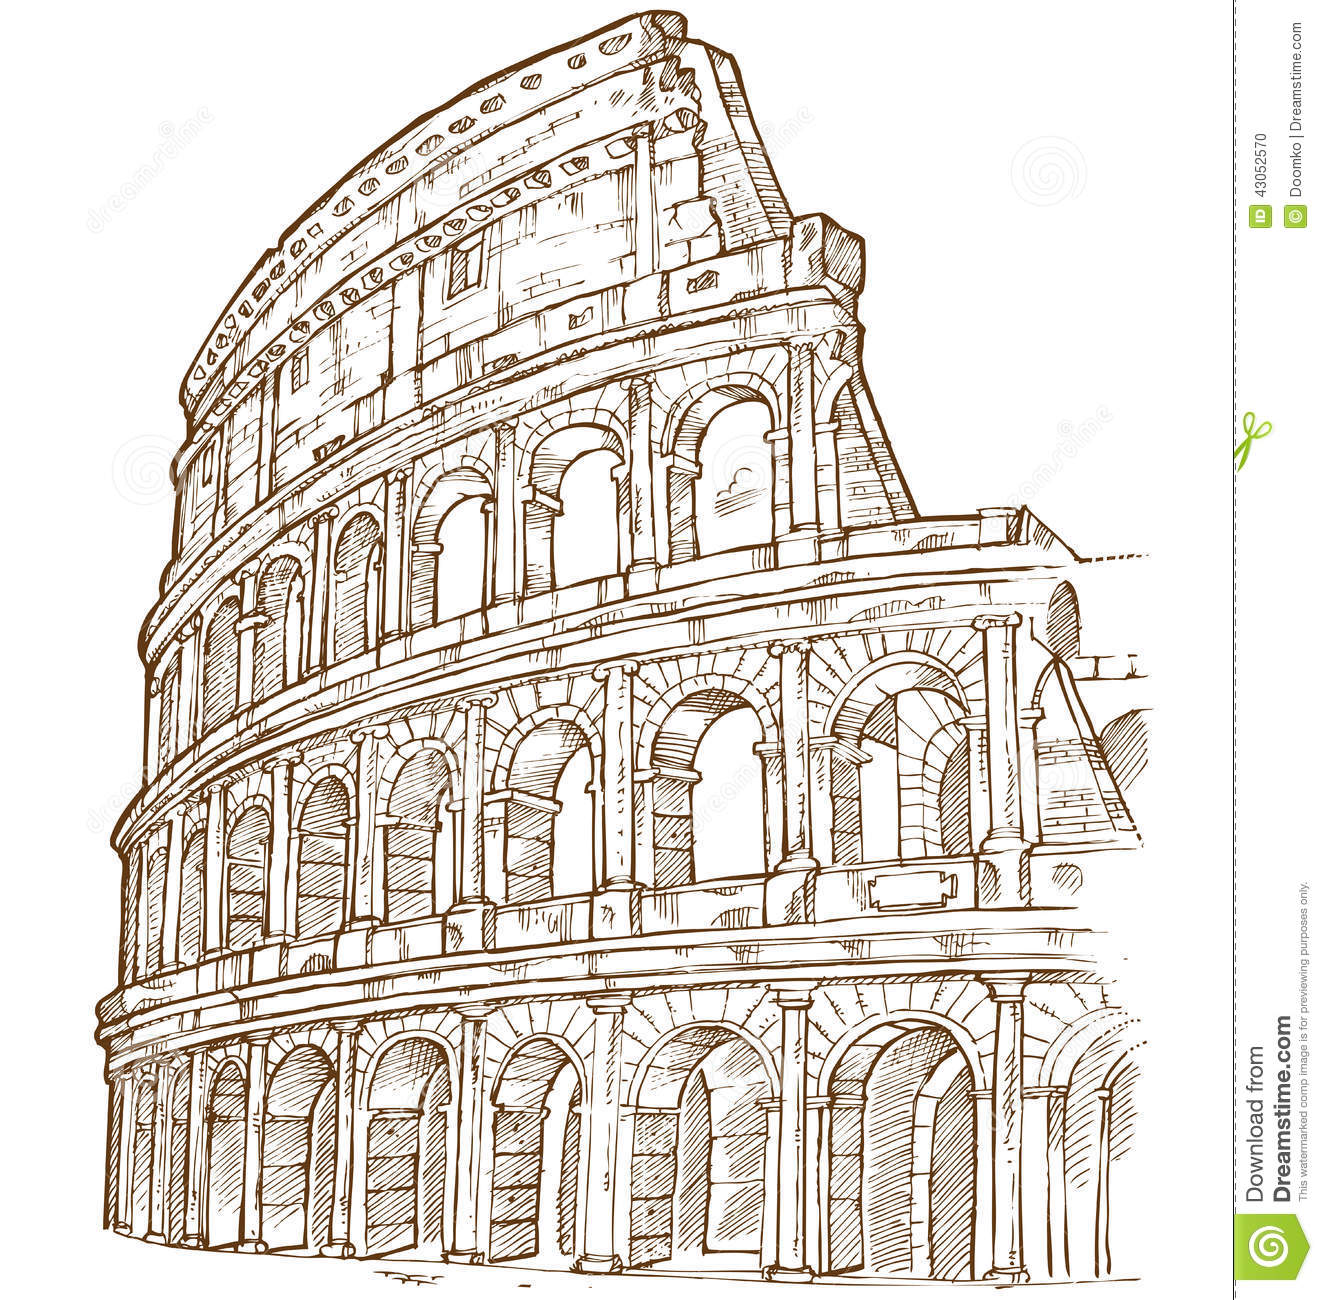 Colosseum Hand Draw Stock Vector - Image: 43052570